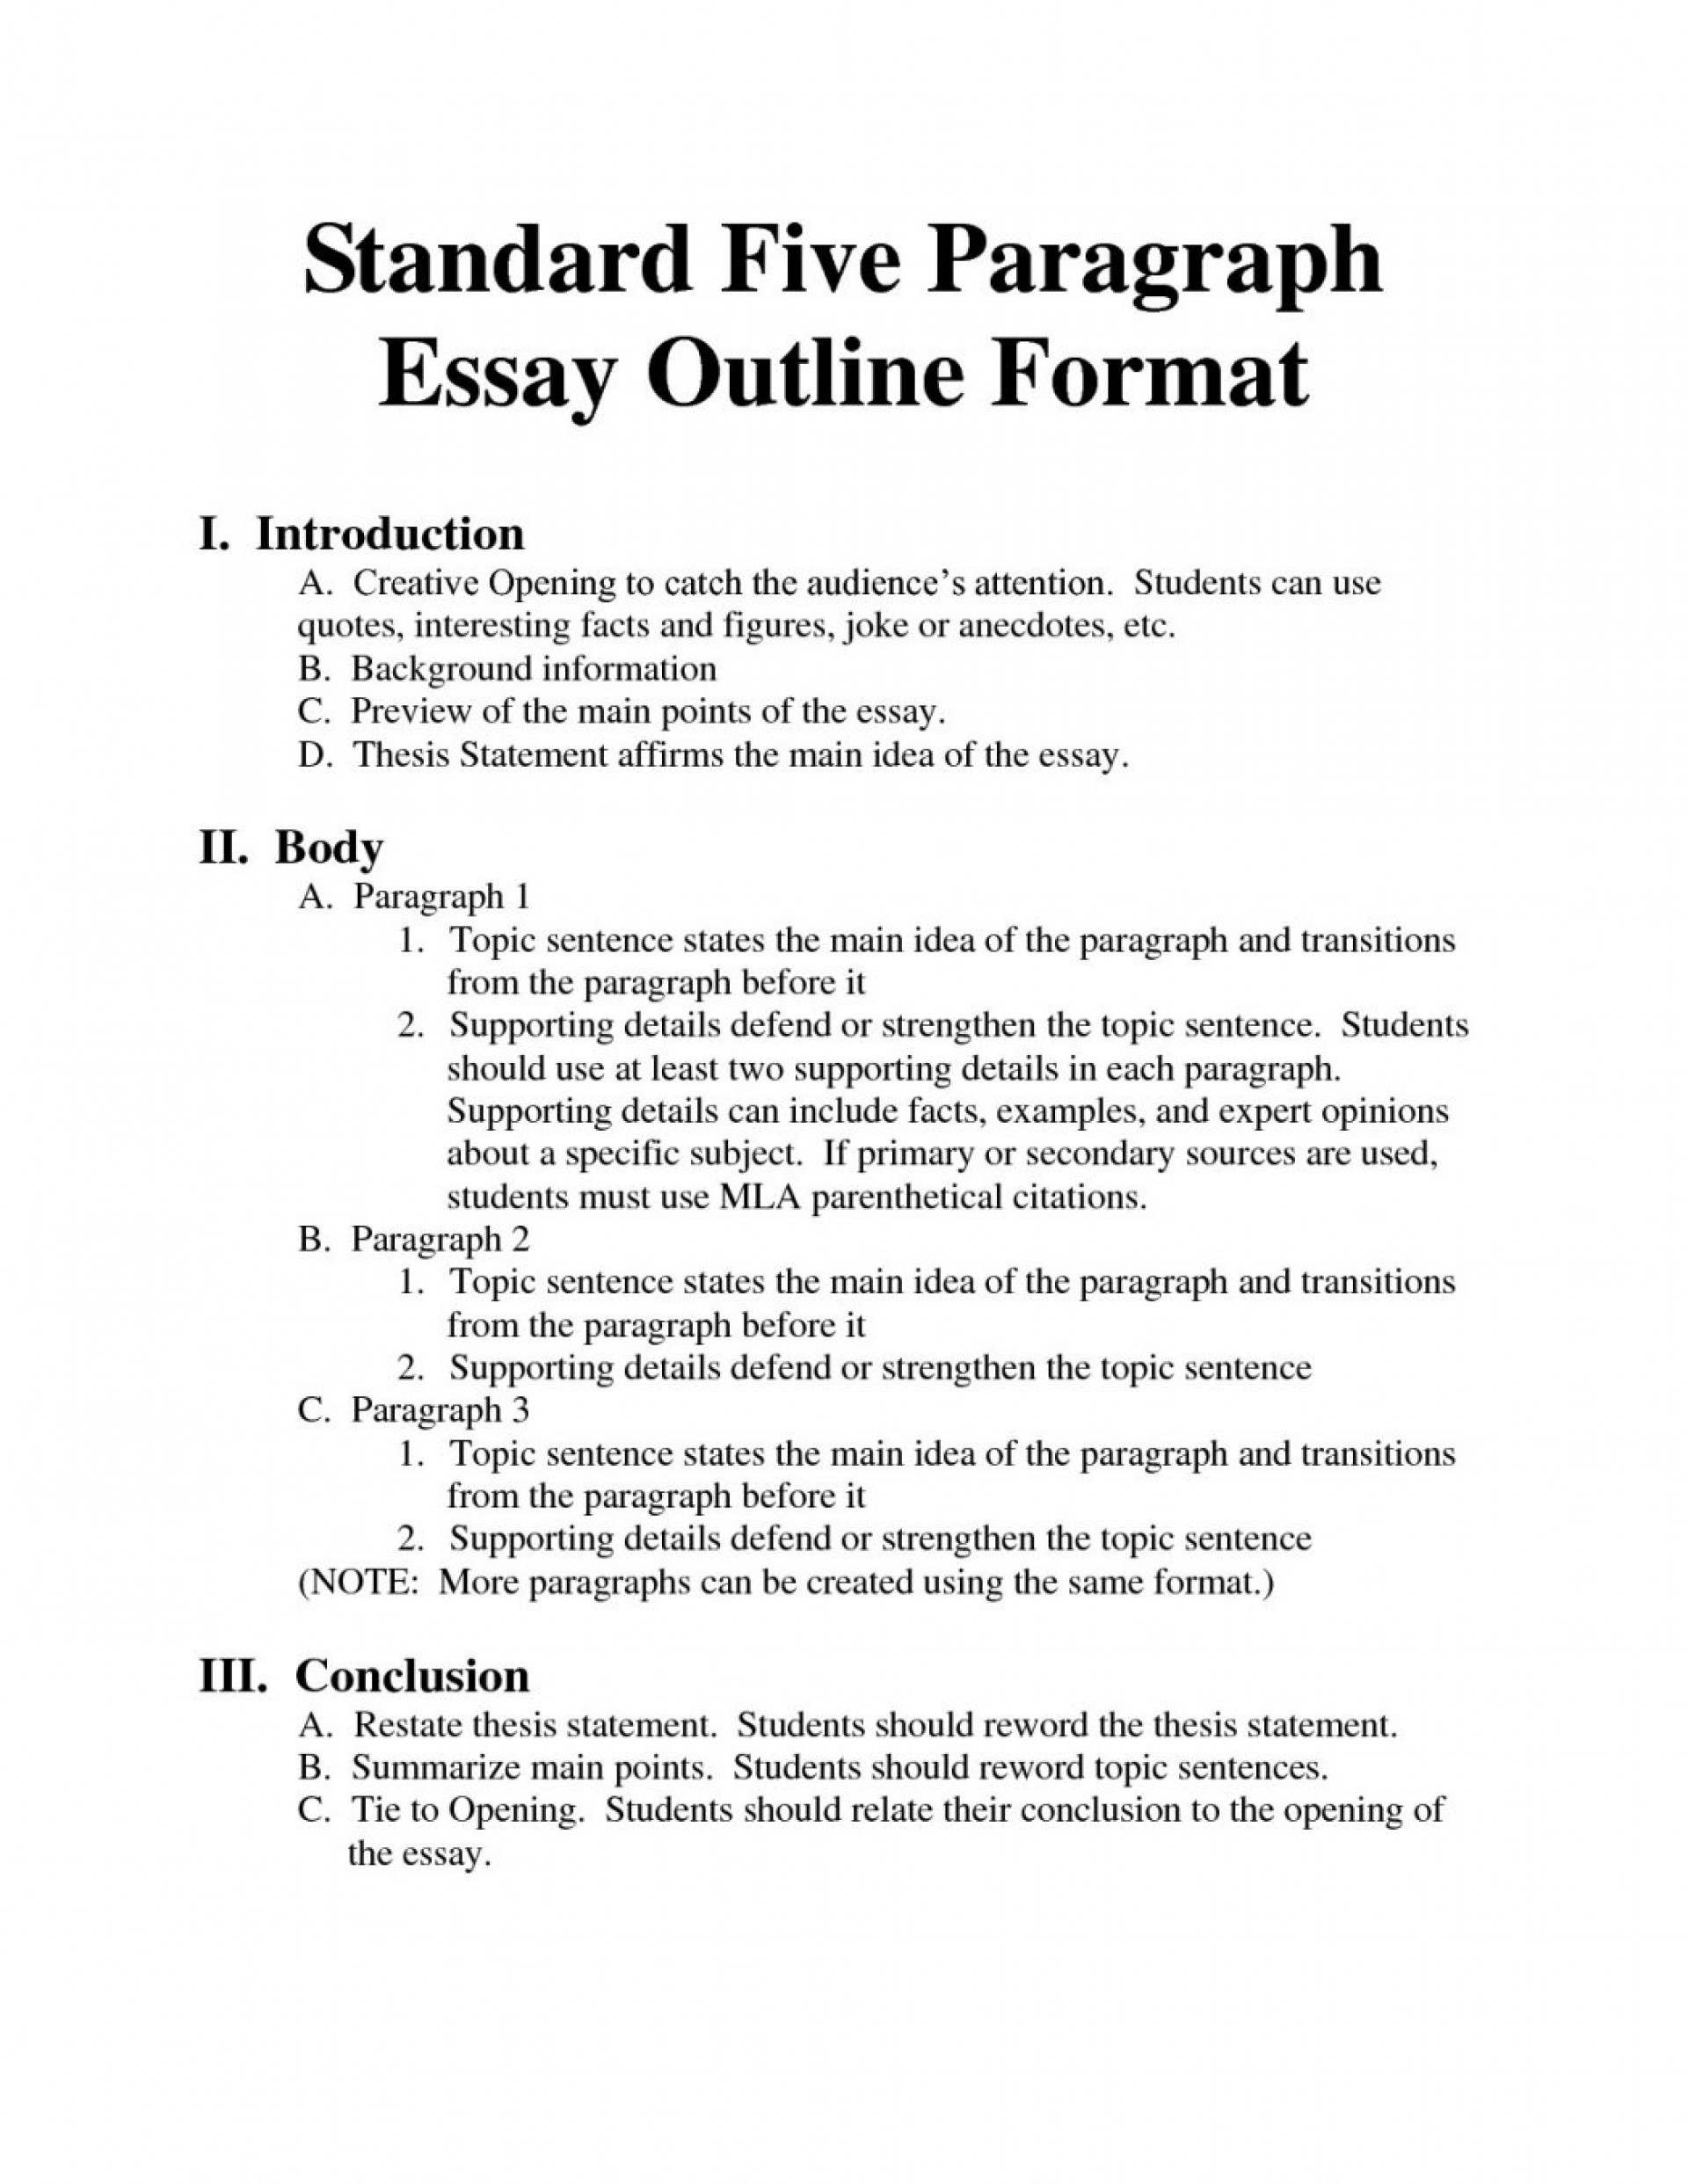 015 Conclusion Maker For Essays Word Rubric Template New Outline Essay Jose Mulinohouse Online 1048x1356 Staggering 1920